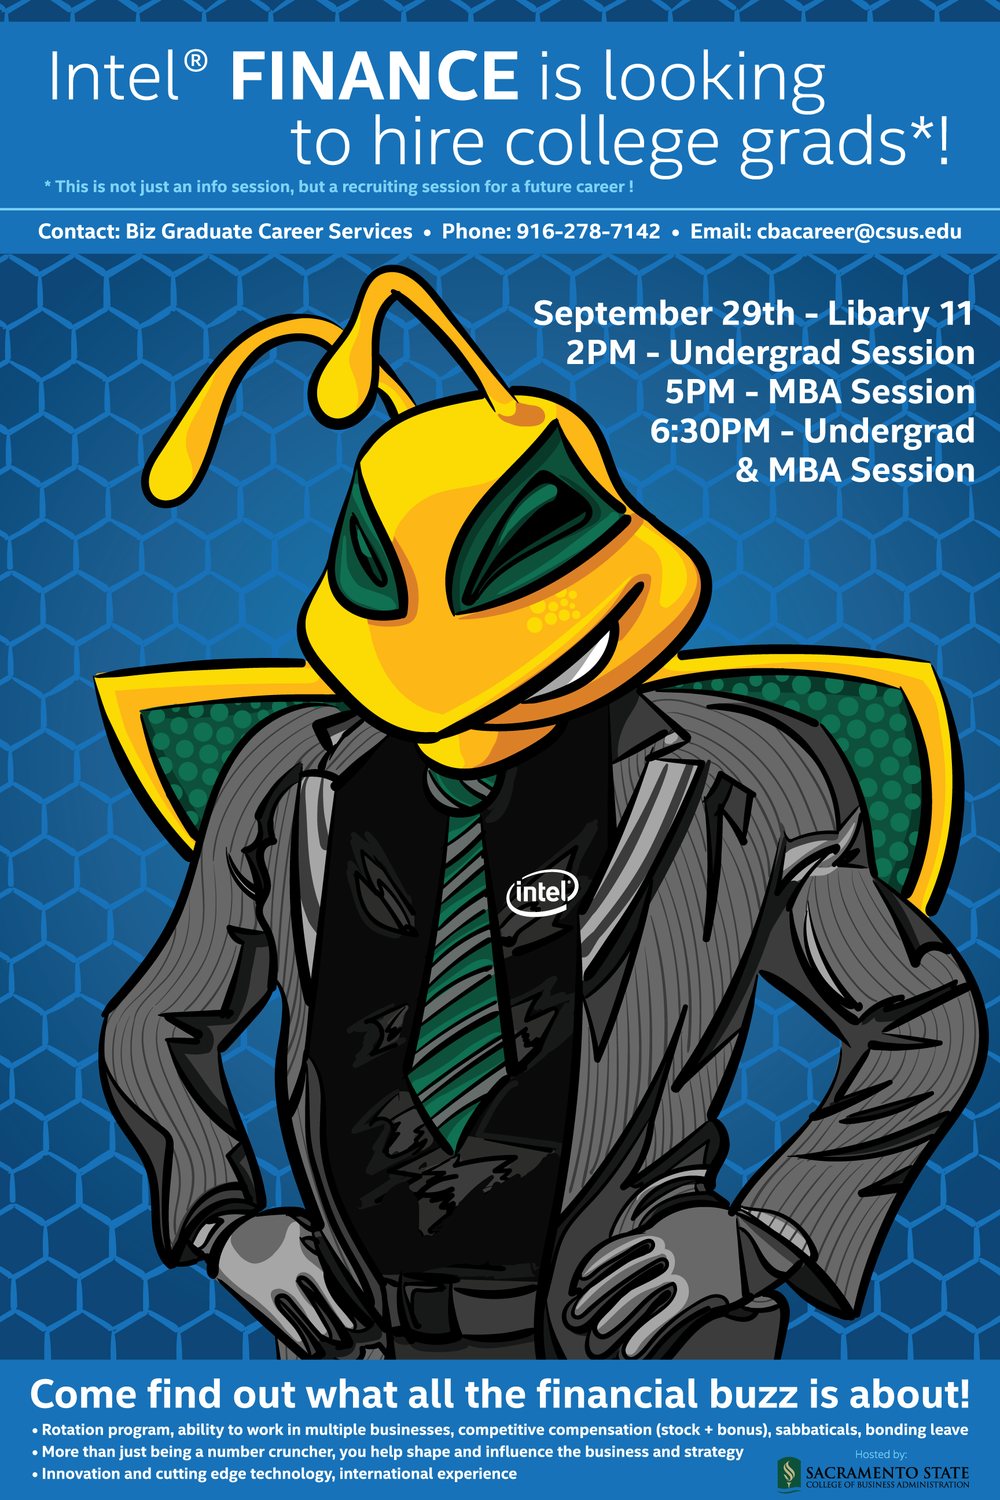 CSUS_Intel_Finance_Poster_BUSINESS_HORNET_FINAL.png